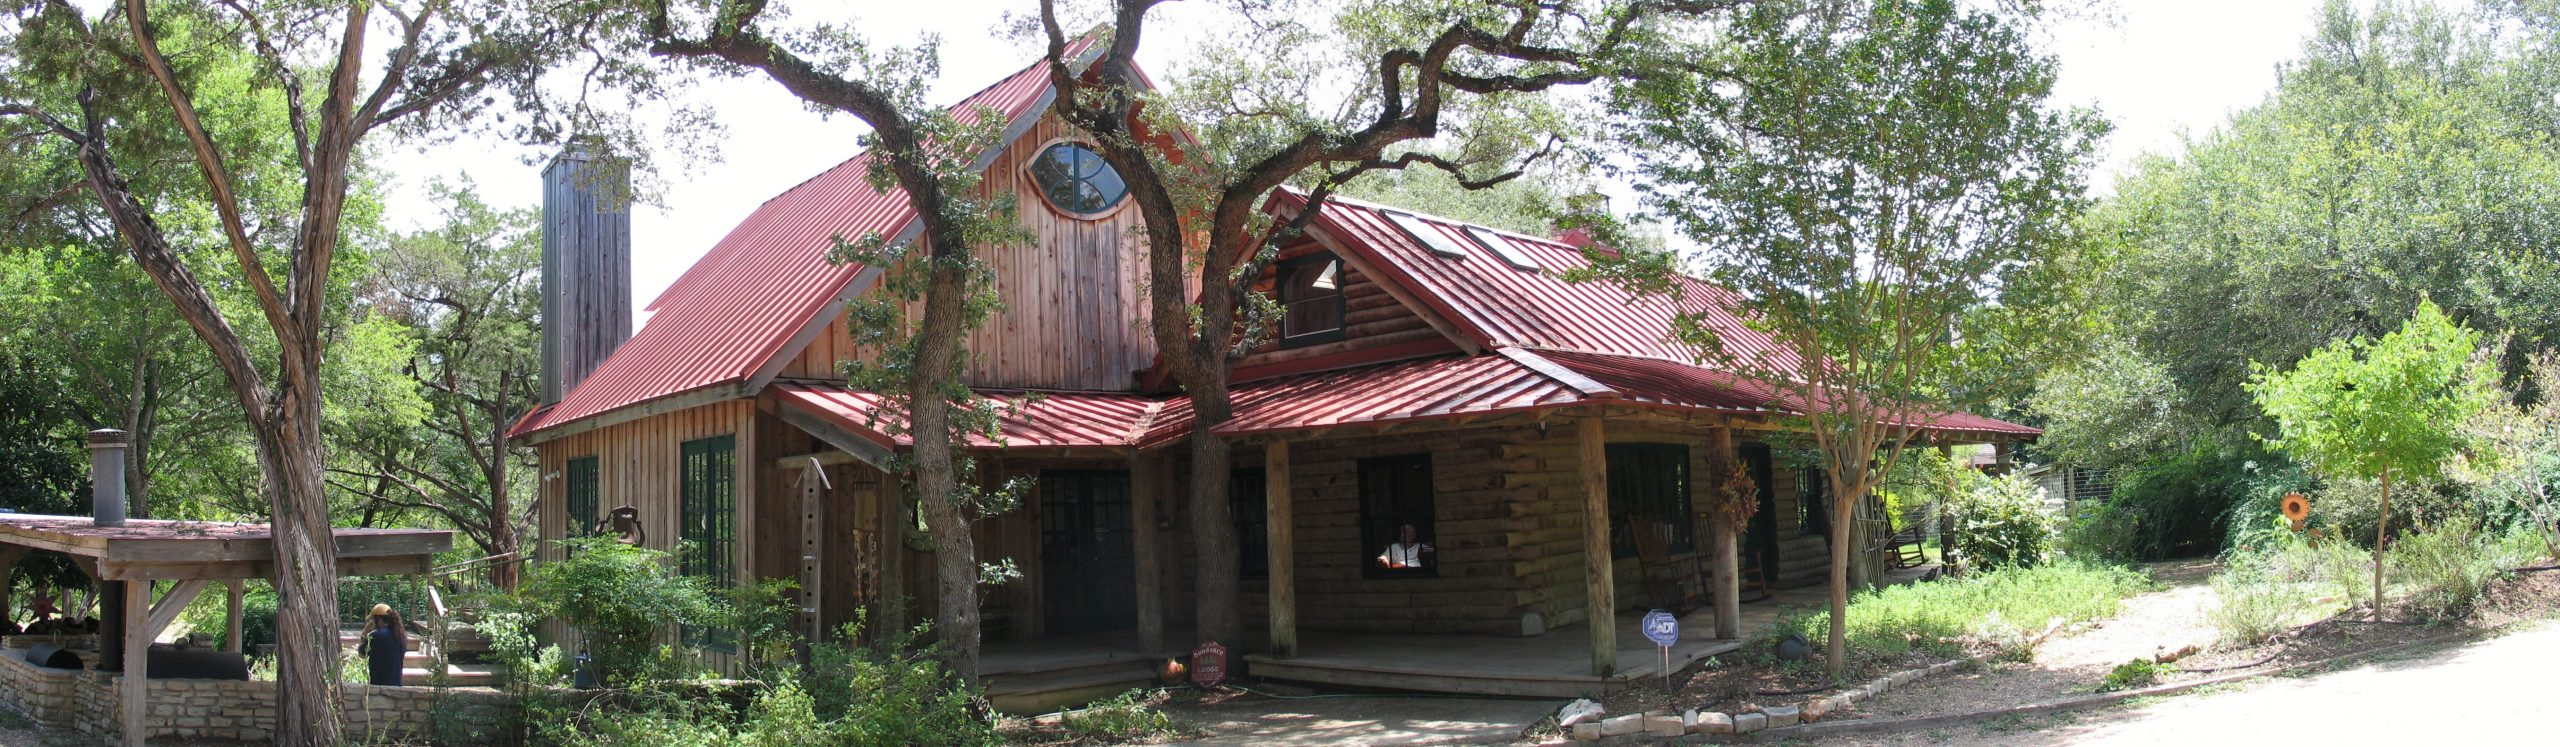 Pet Friendly Lodging Special in Texas Hill Country